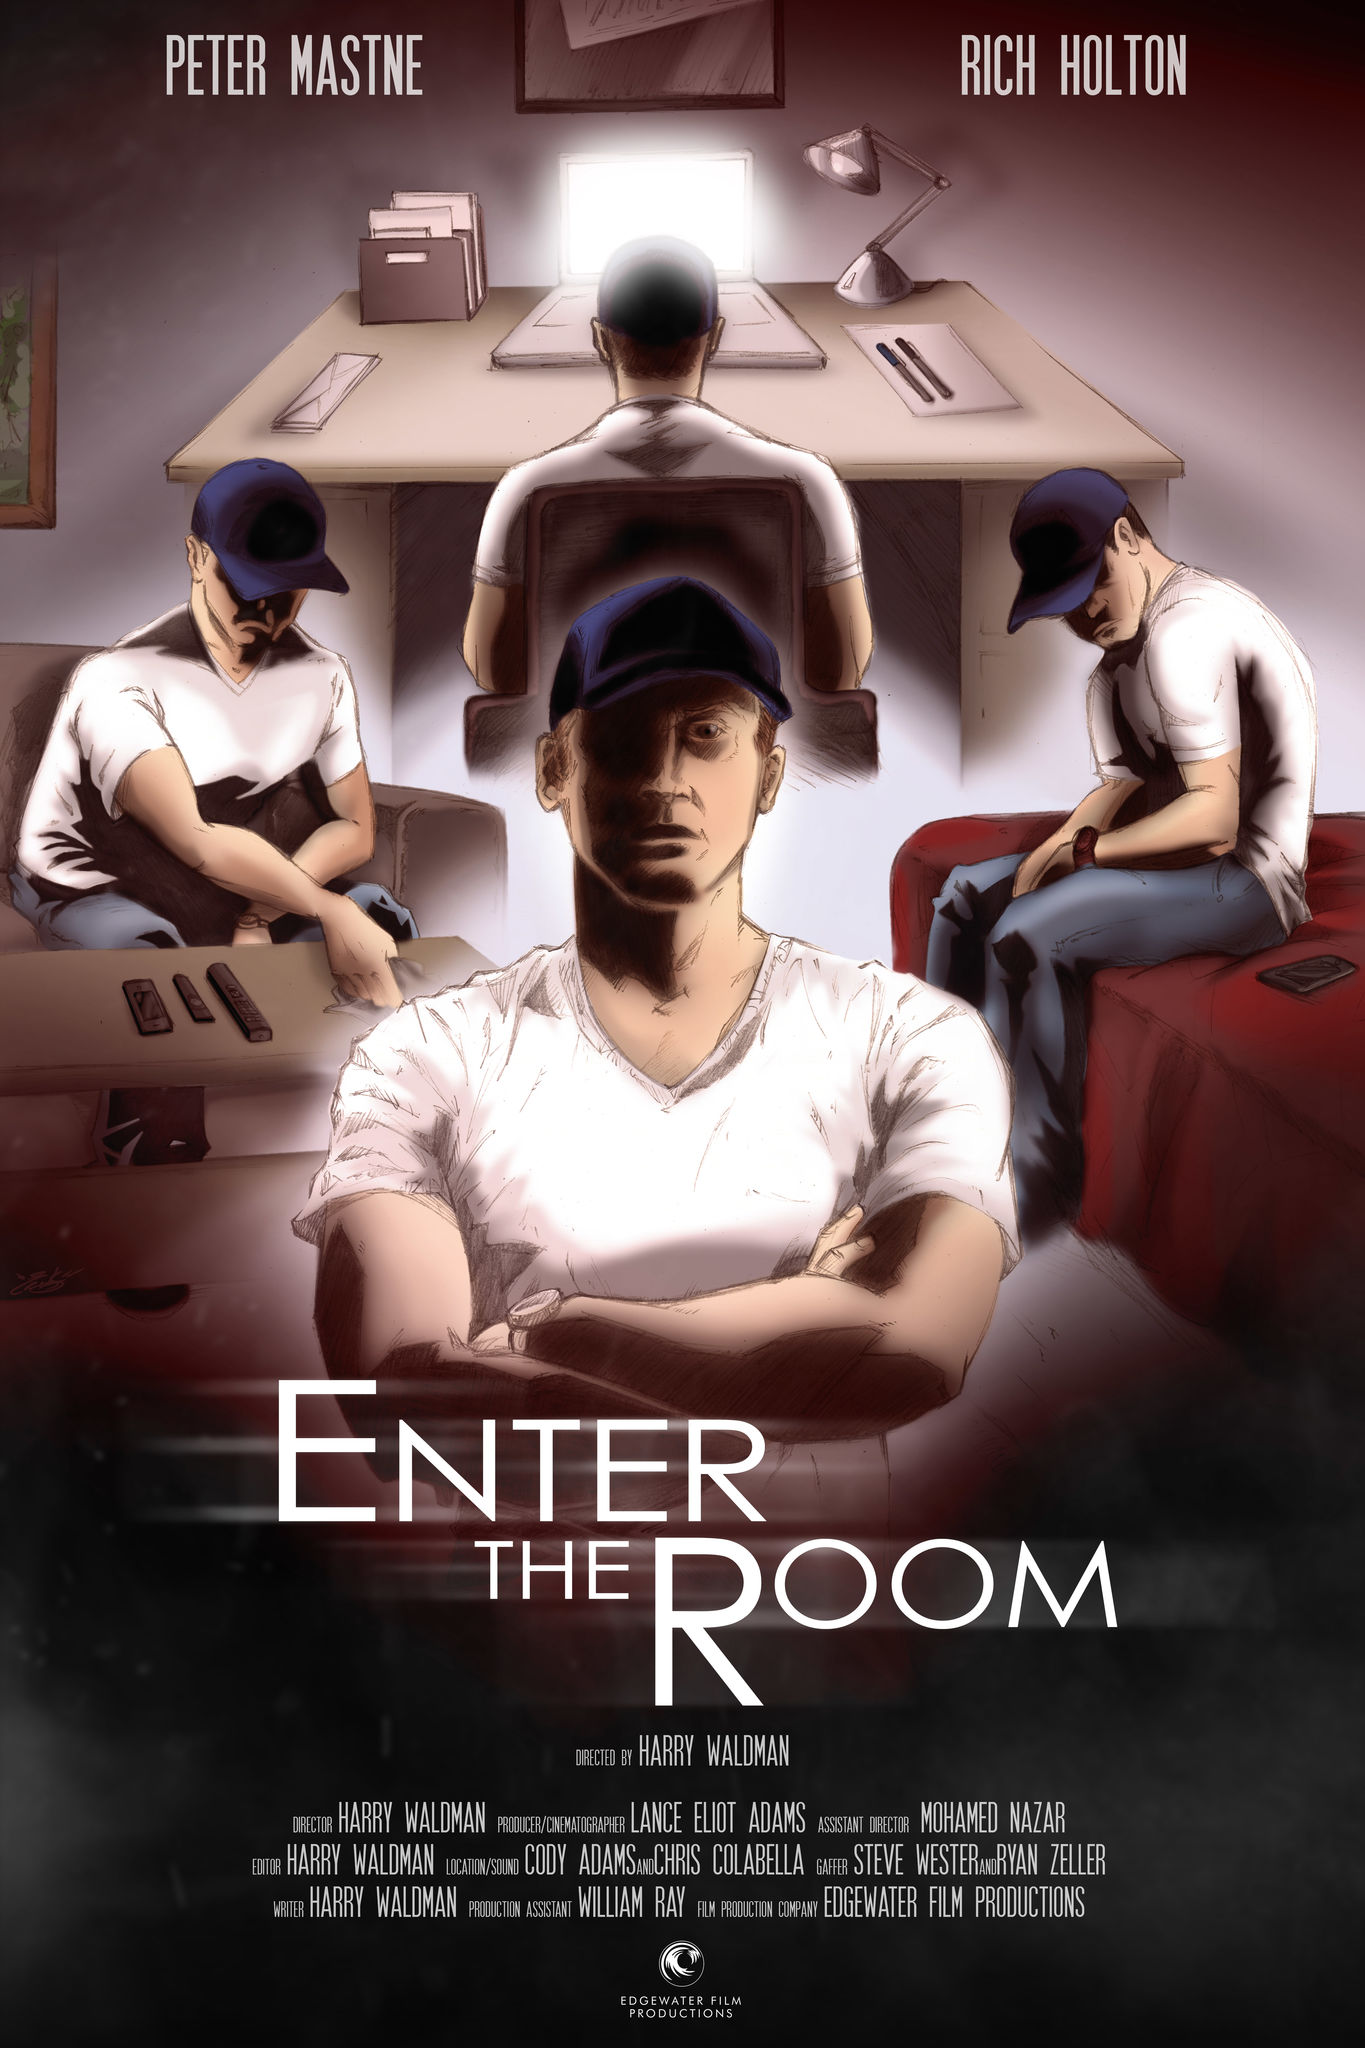 Enter the Room